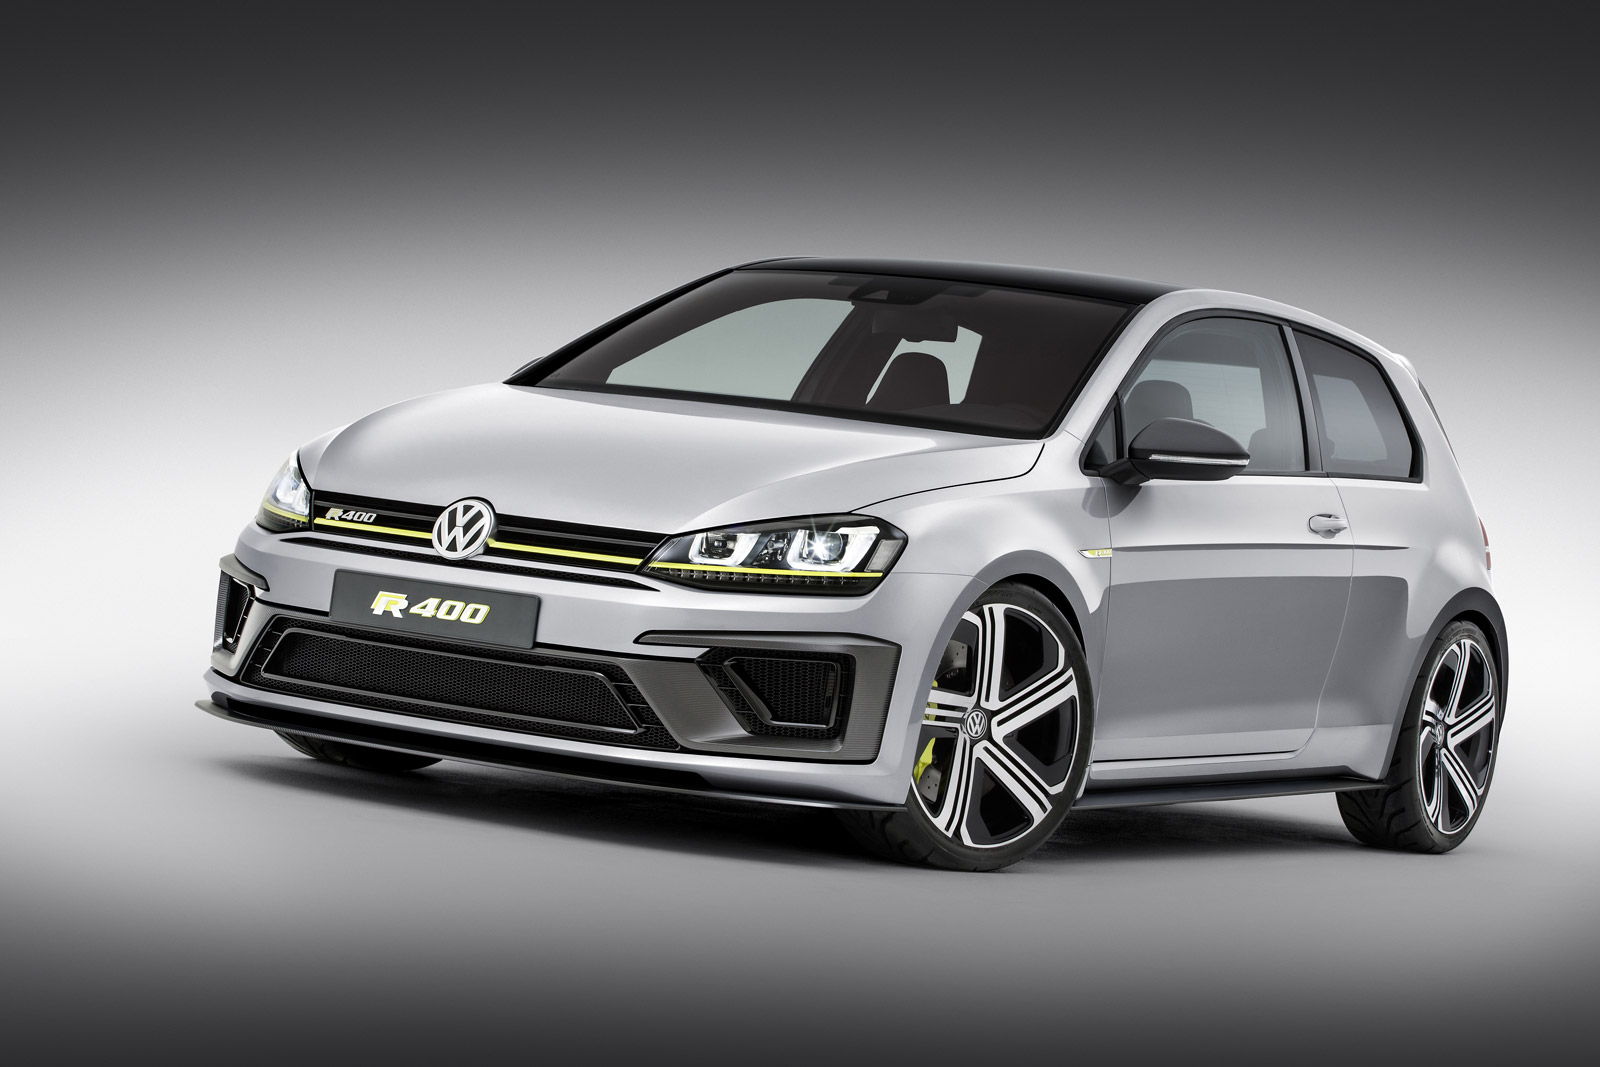 e5a2e6d2d 400-horsepower VW Golf R reportedly back on the table